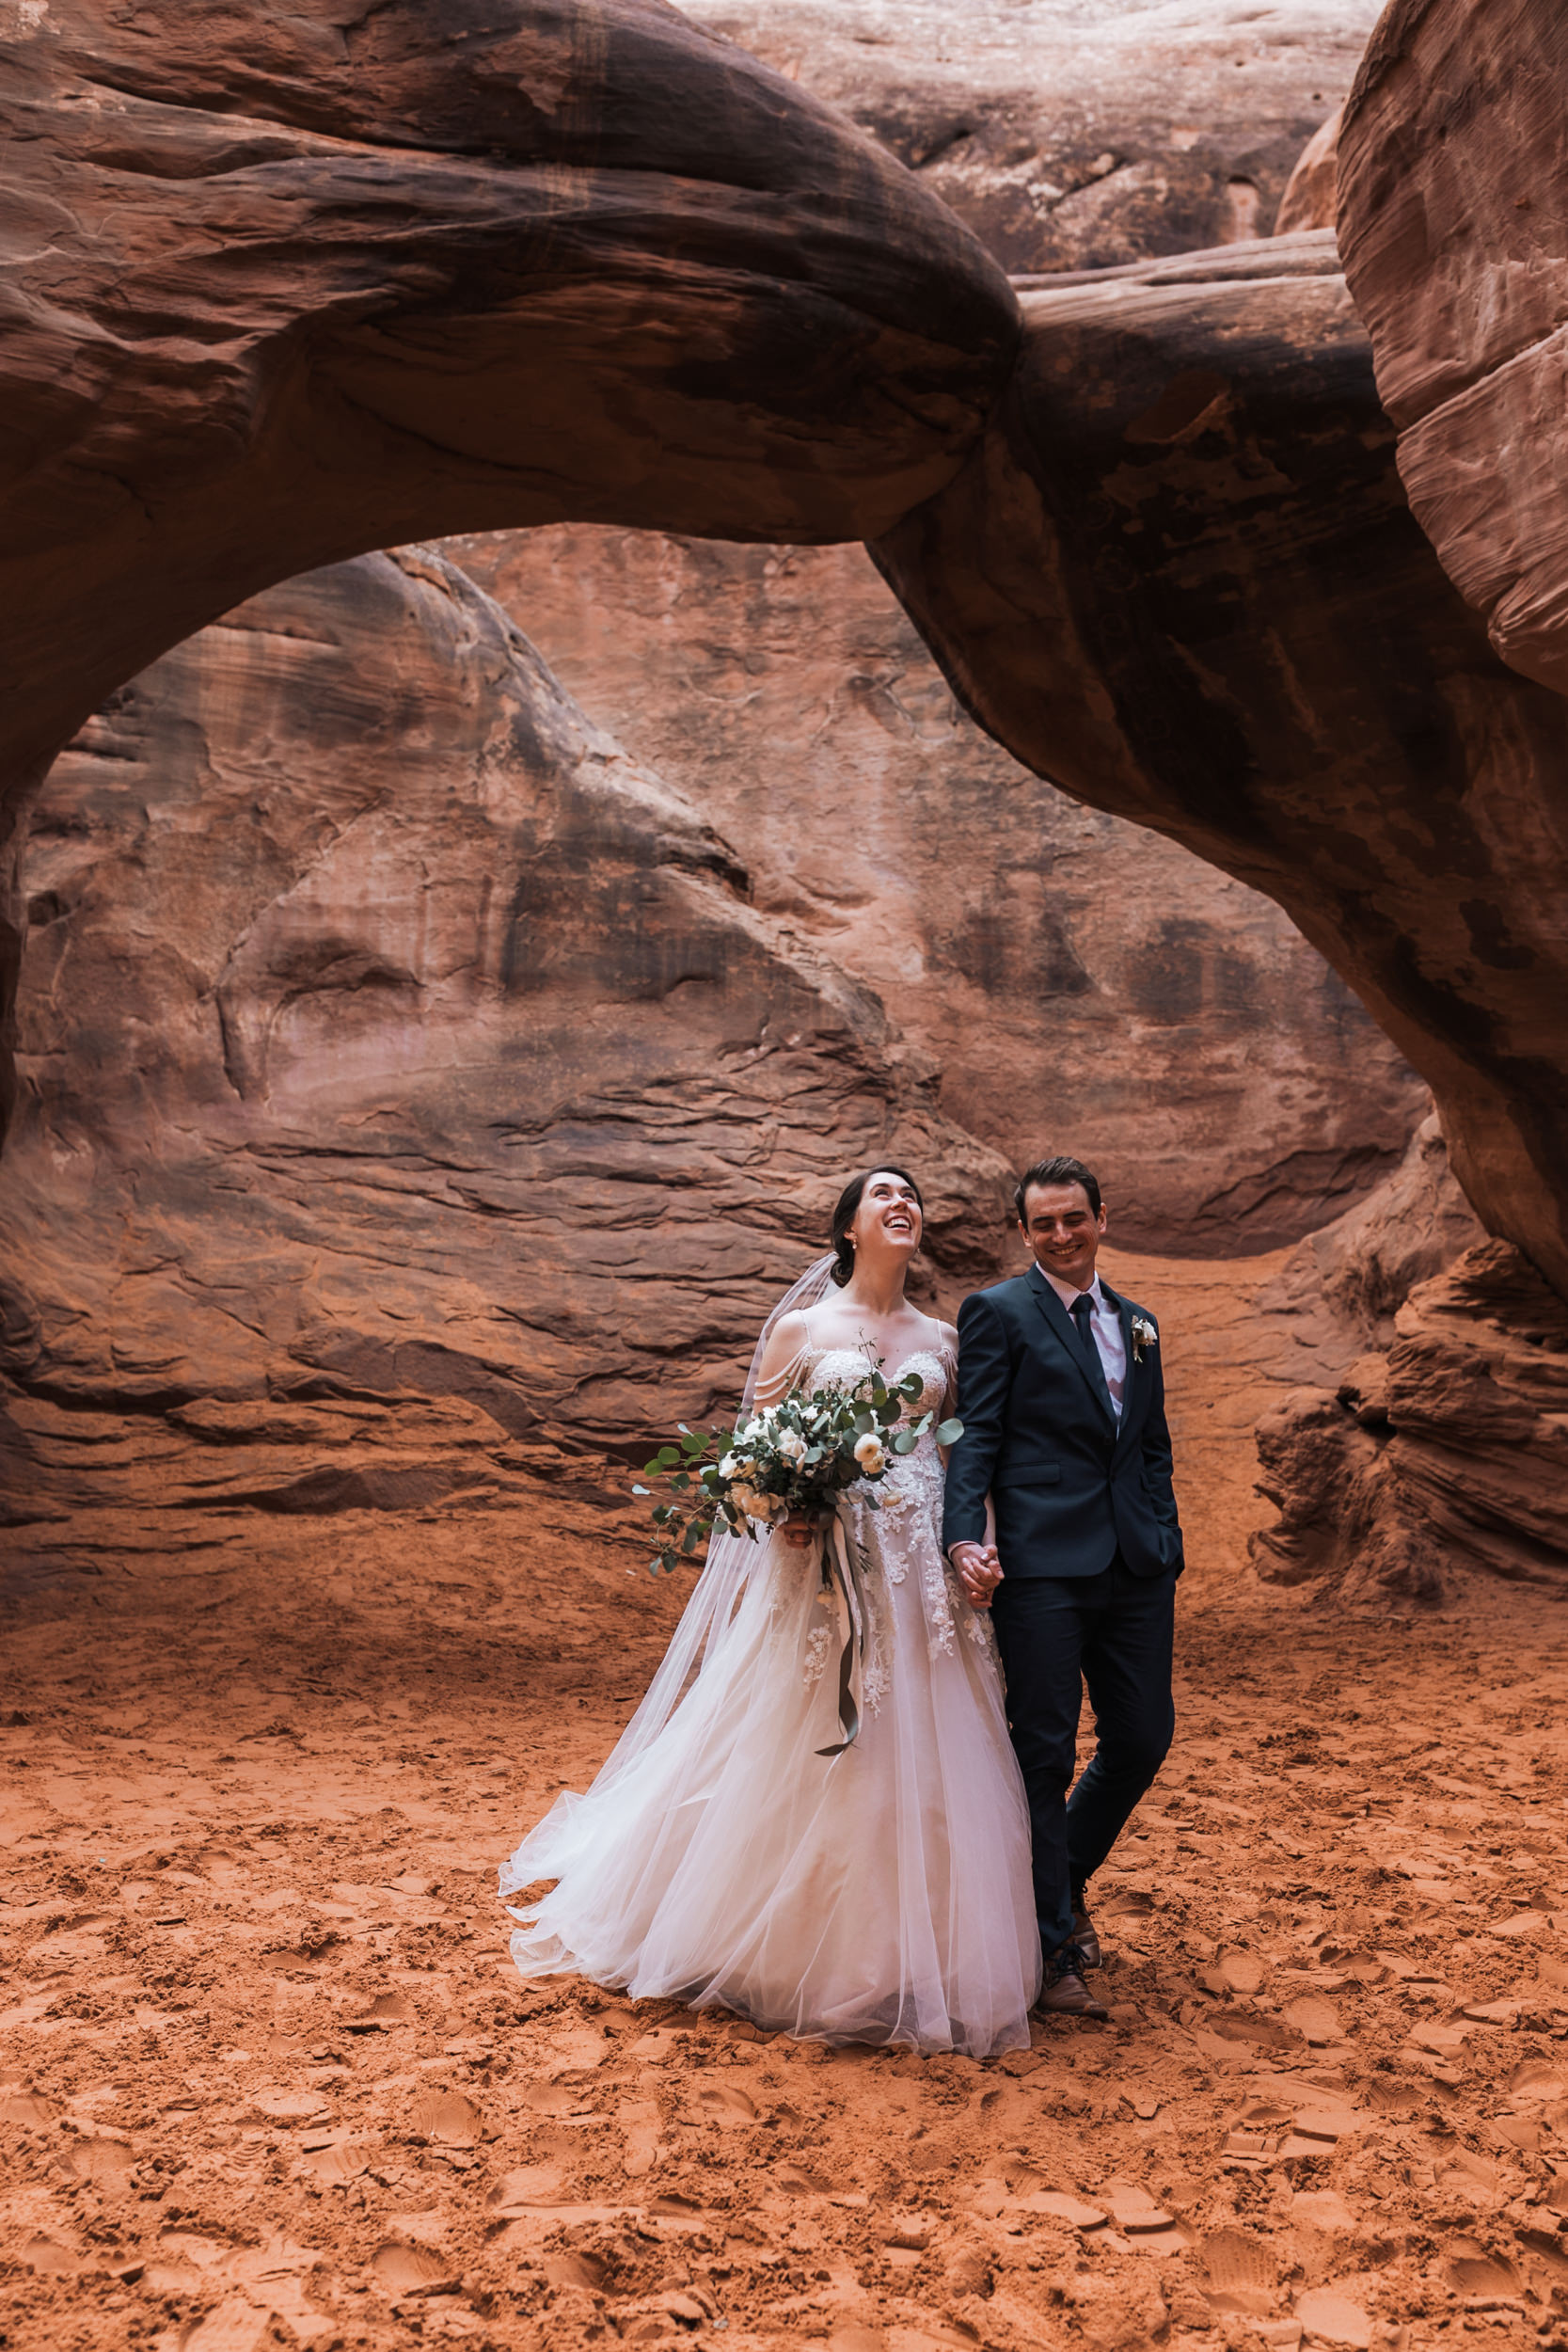 We had such a great time hiking after their wedding ceremony in Arches National Park.